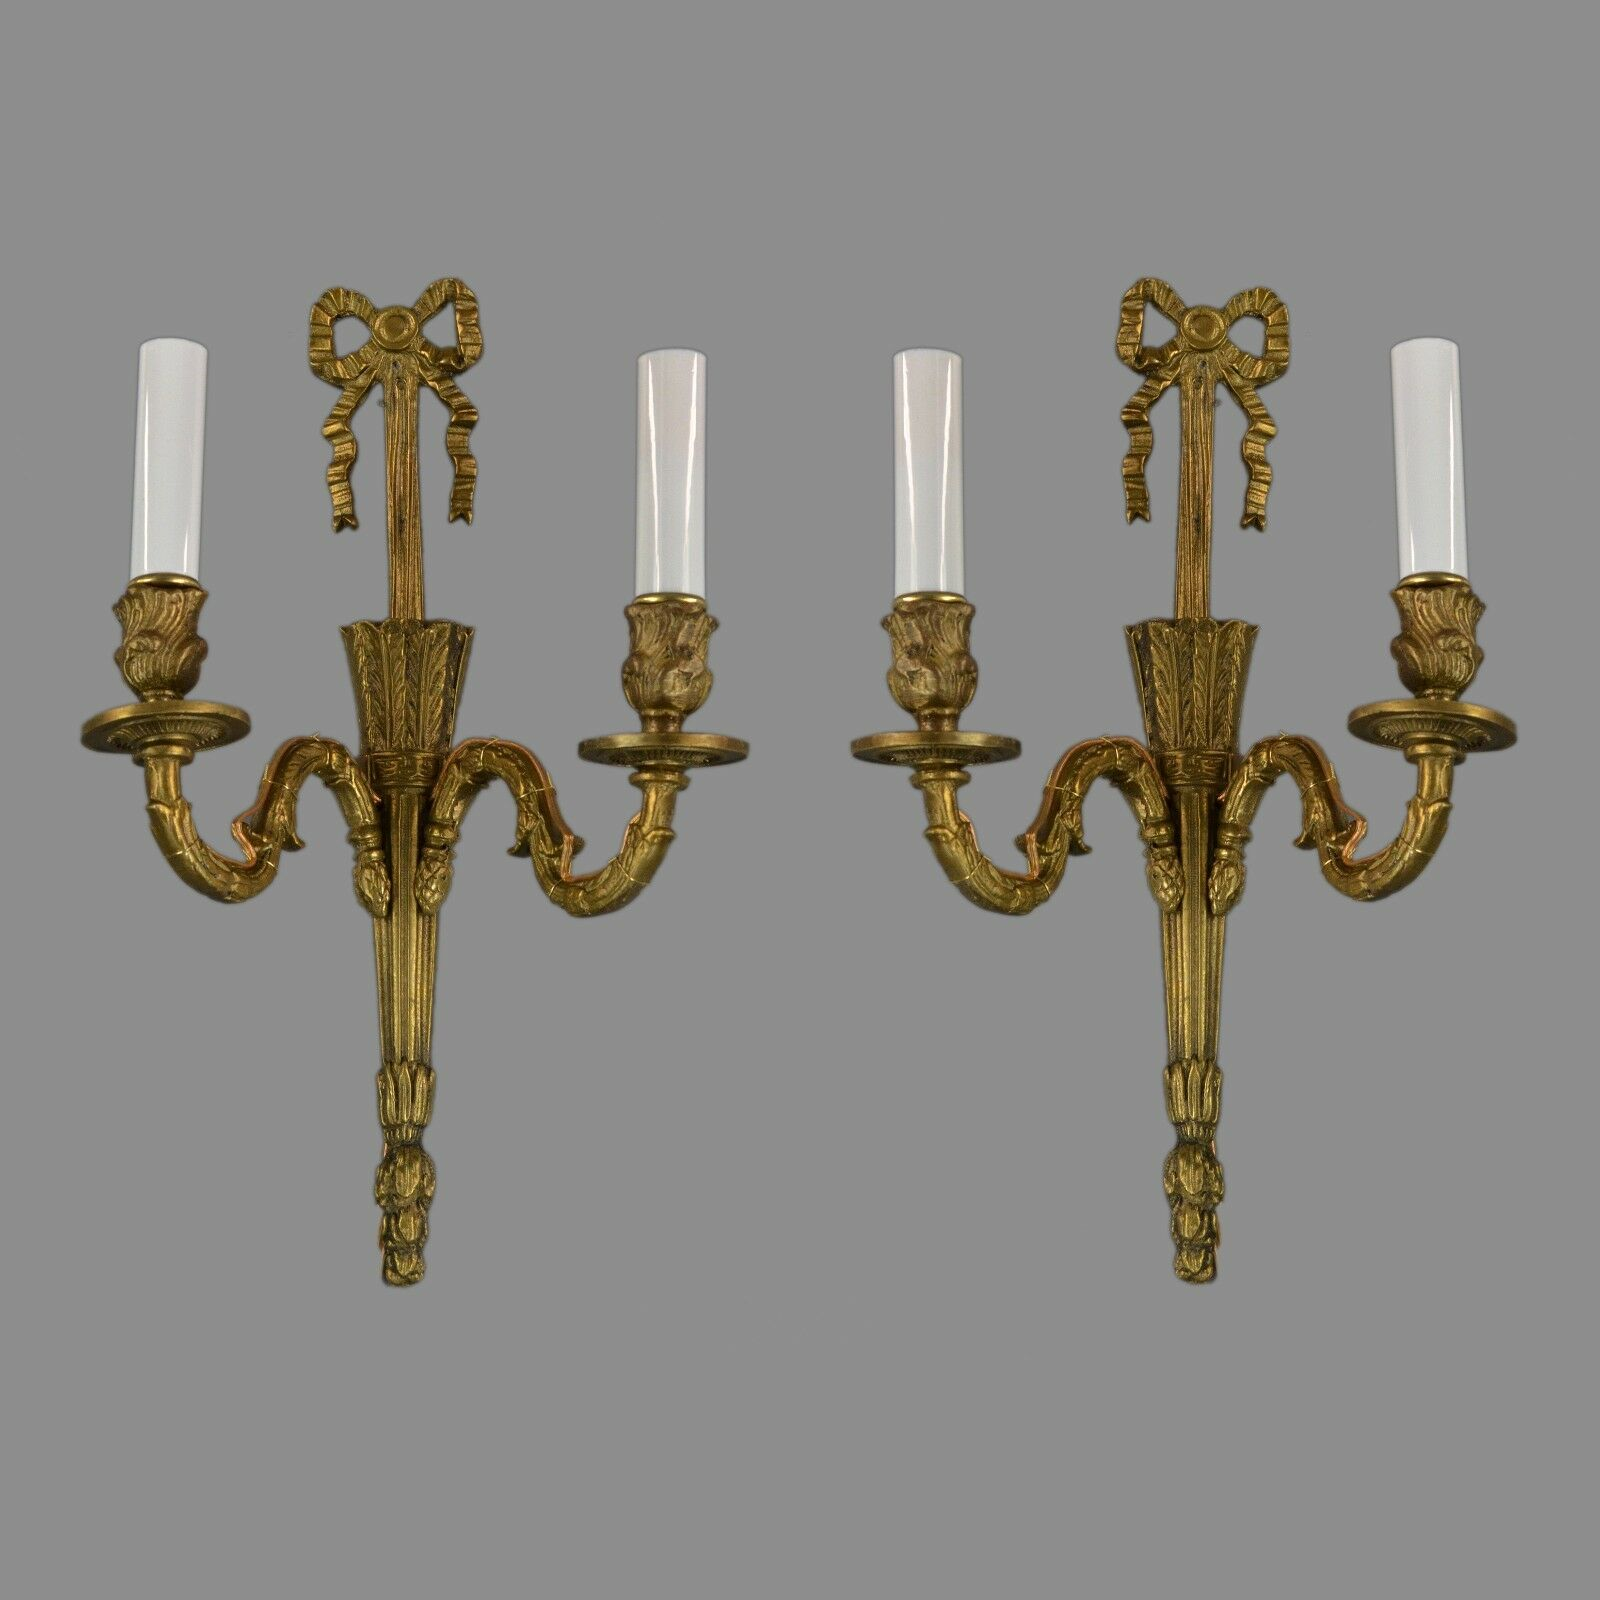 Brass Regency Wall Sconces c1950 Antique Vintage Italian Ornate Gold Gilt French